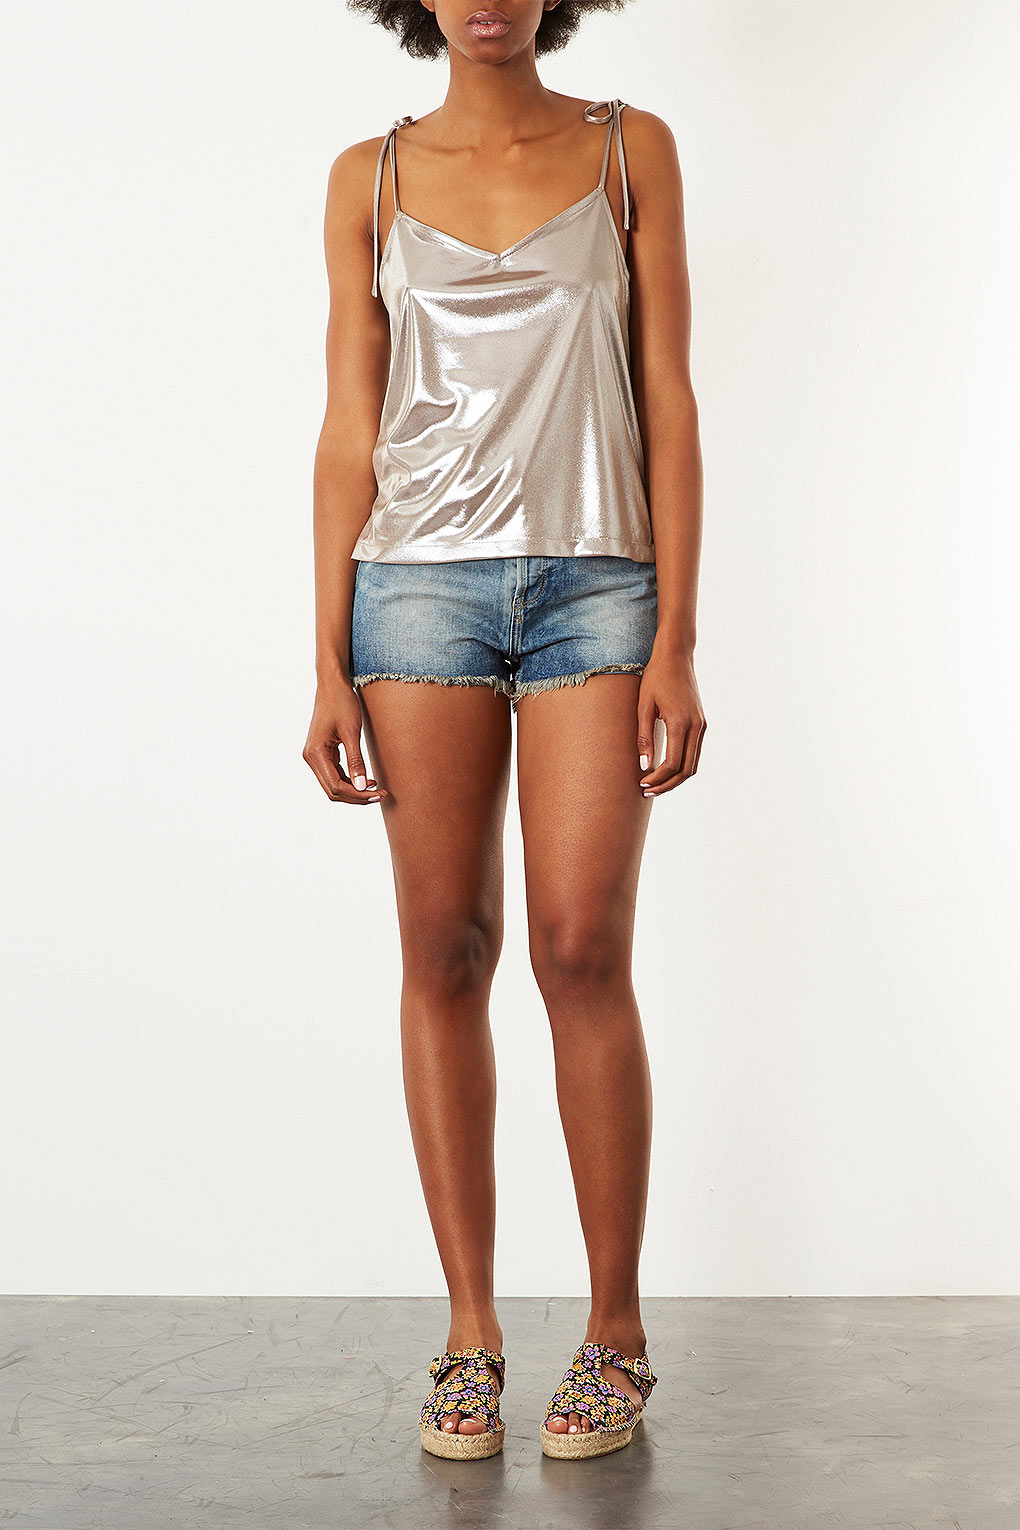 Silver Jeans For Women